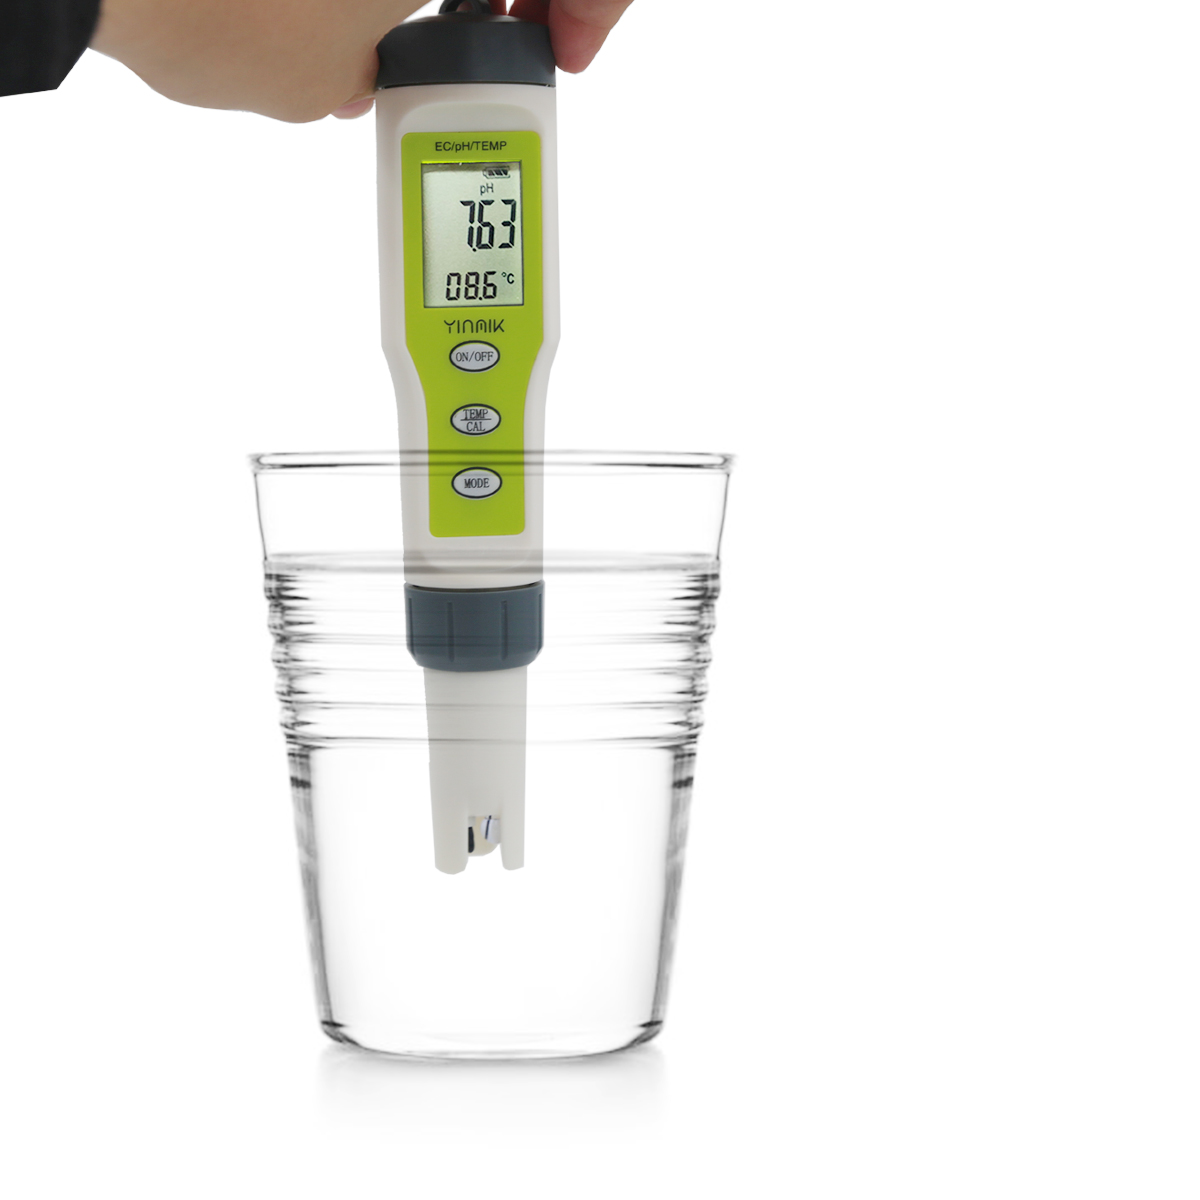 3-in-1 Digital PH Tester Temperature EC PH <strong>Meter</strong> 0.01 High Accuracy 0-14pH Range Water Quality Auto Calibration For Aquariums